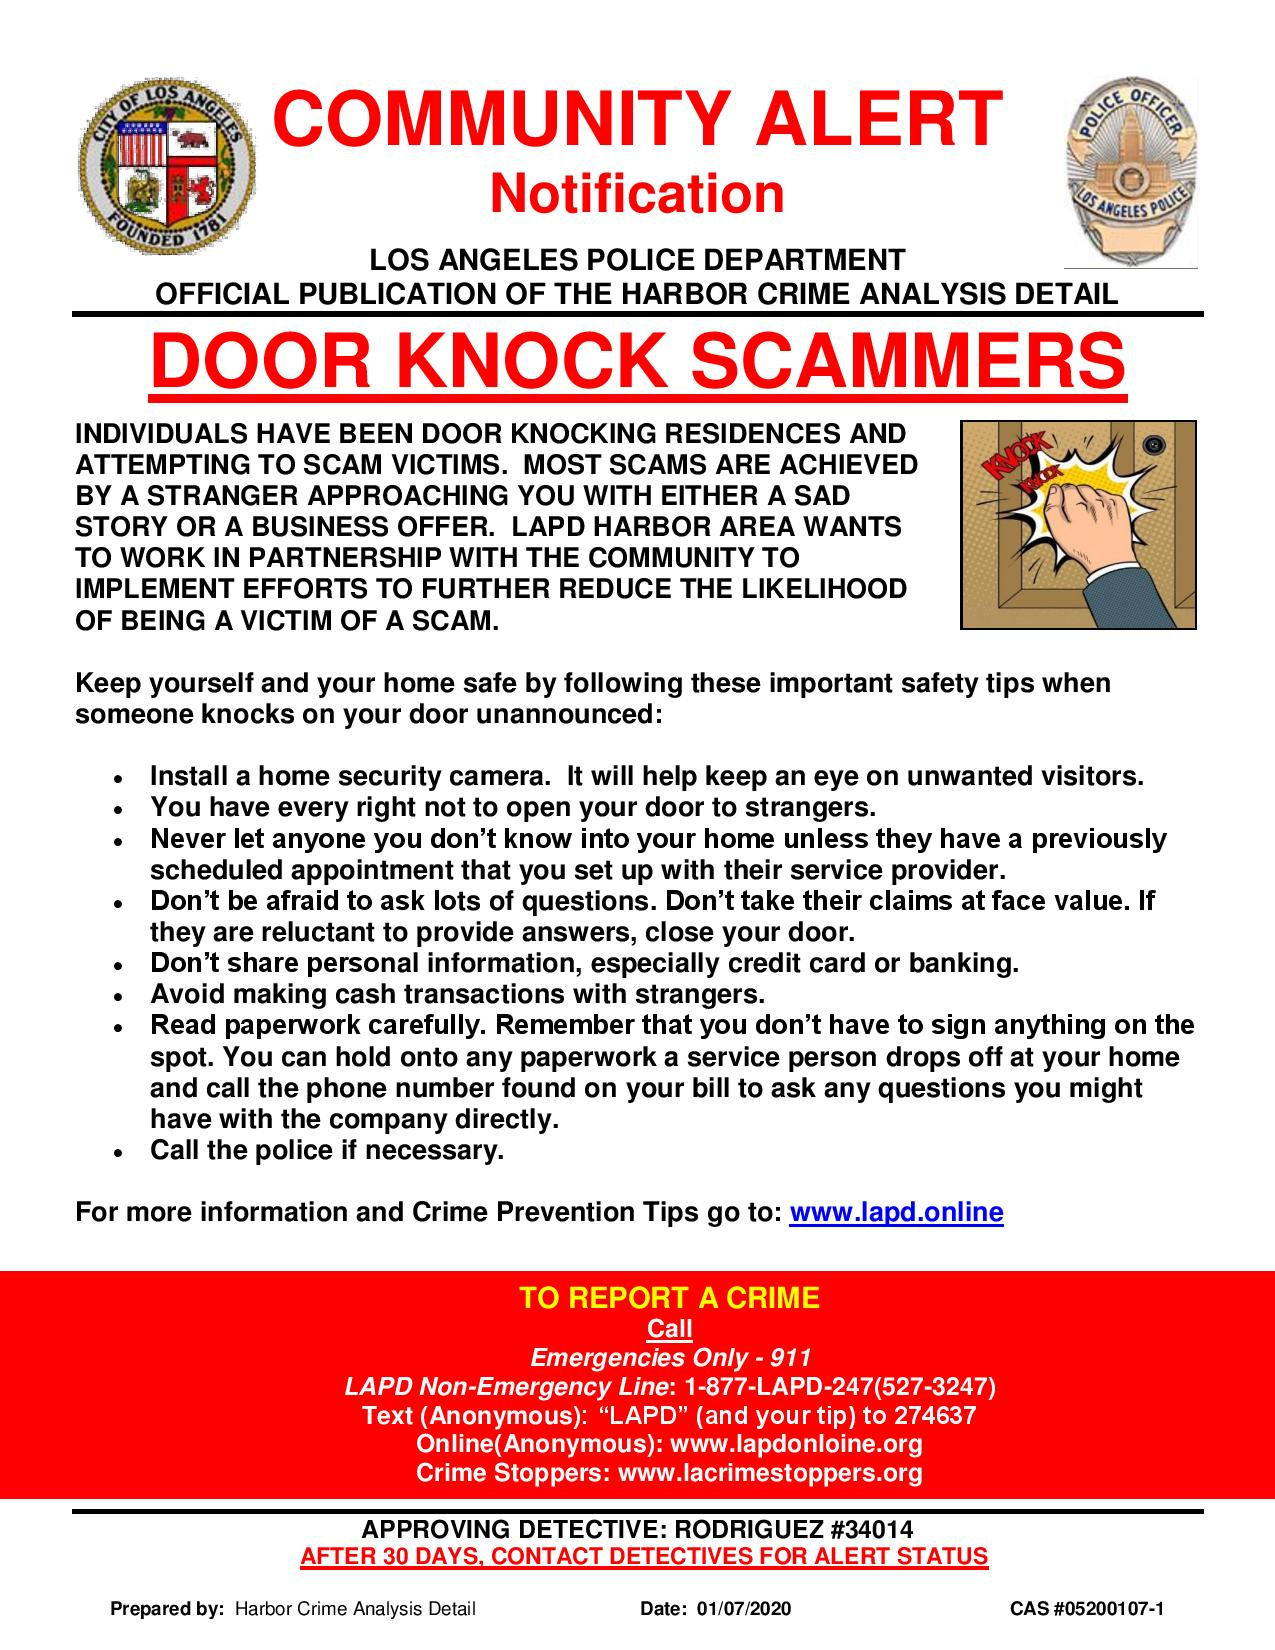 Community Alert:  Door Knock Scammers